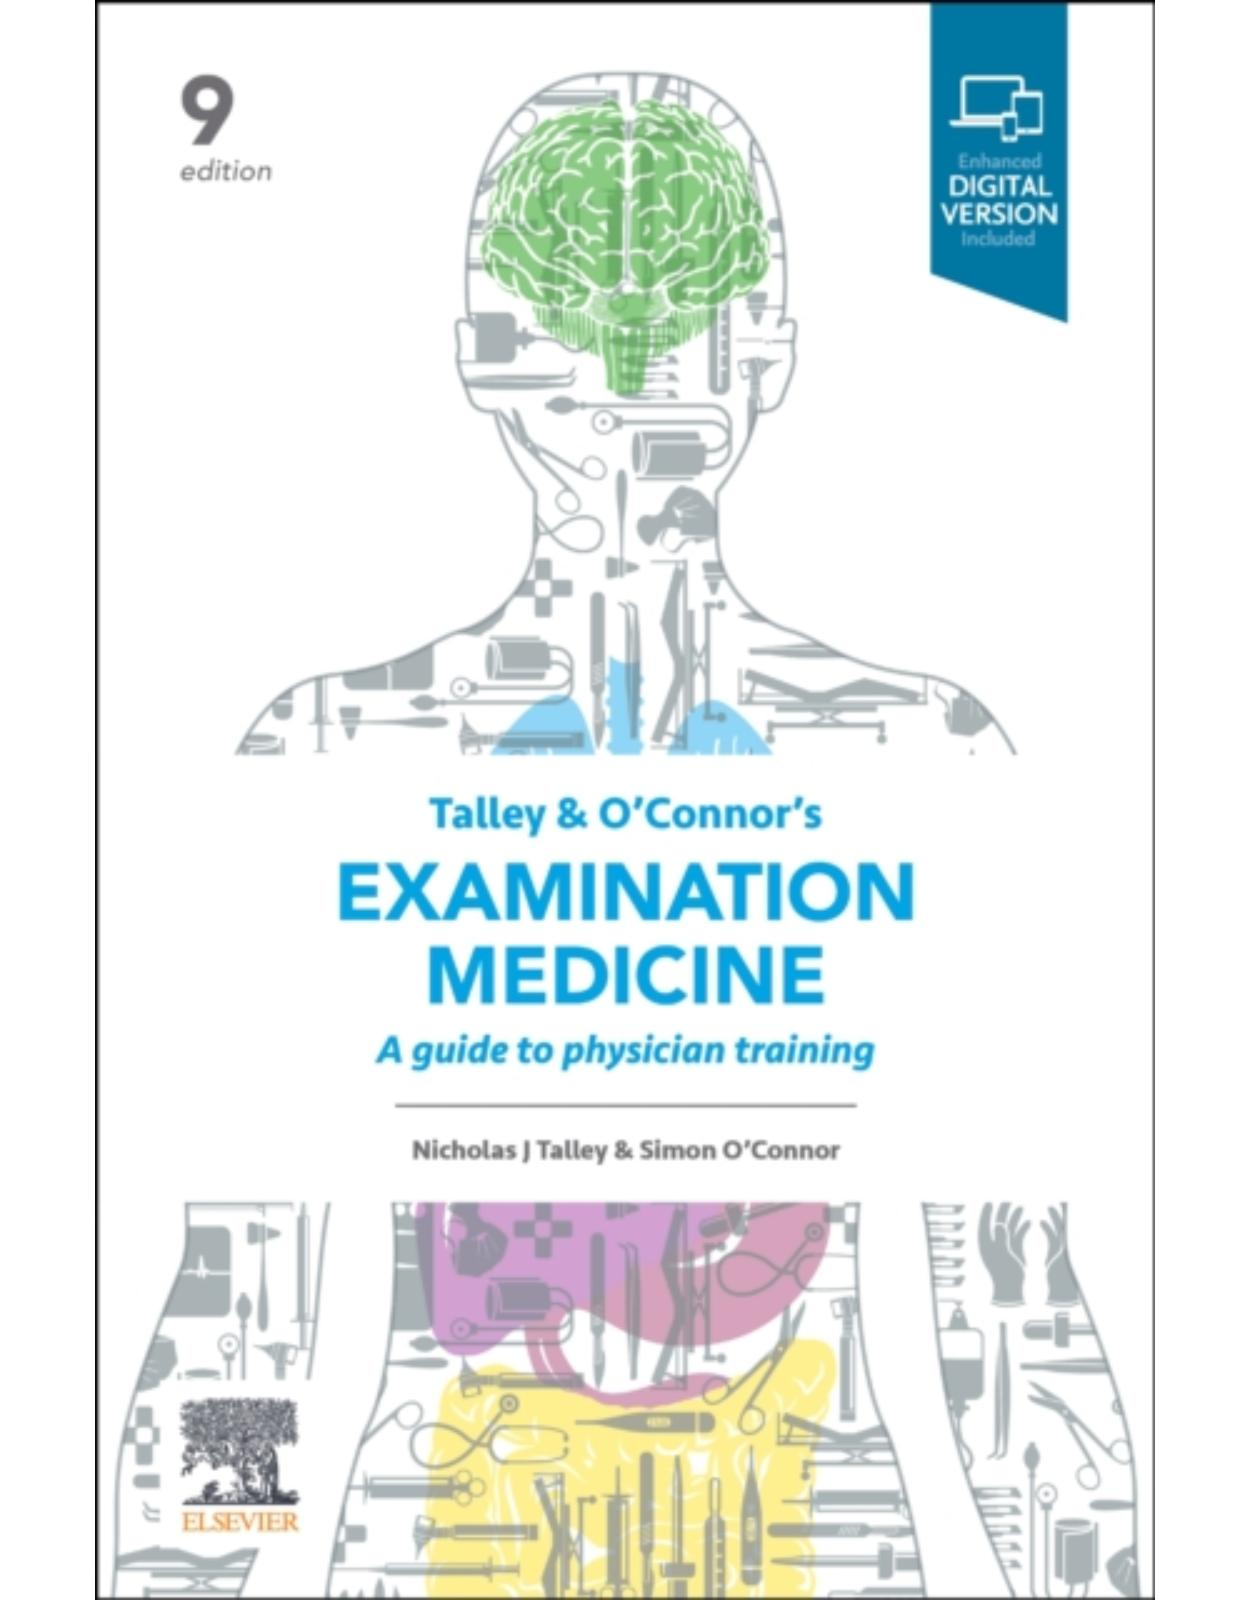 Talley and O'Connor's Examination Medicine: A Guide to Physician Training